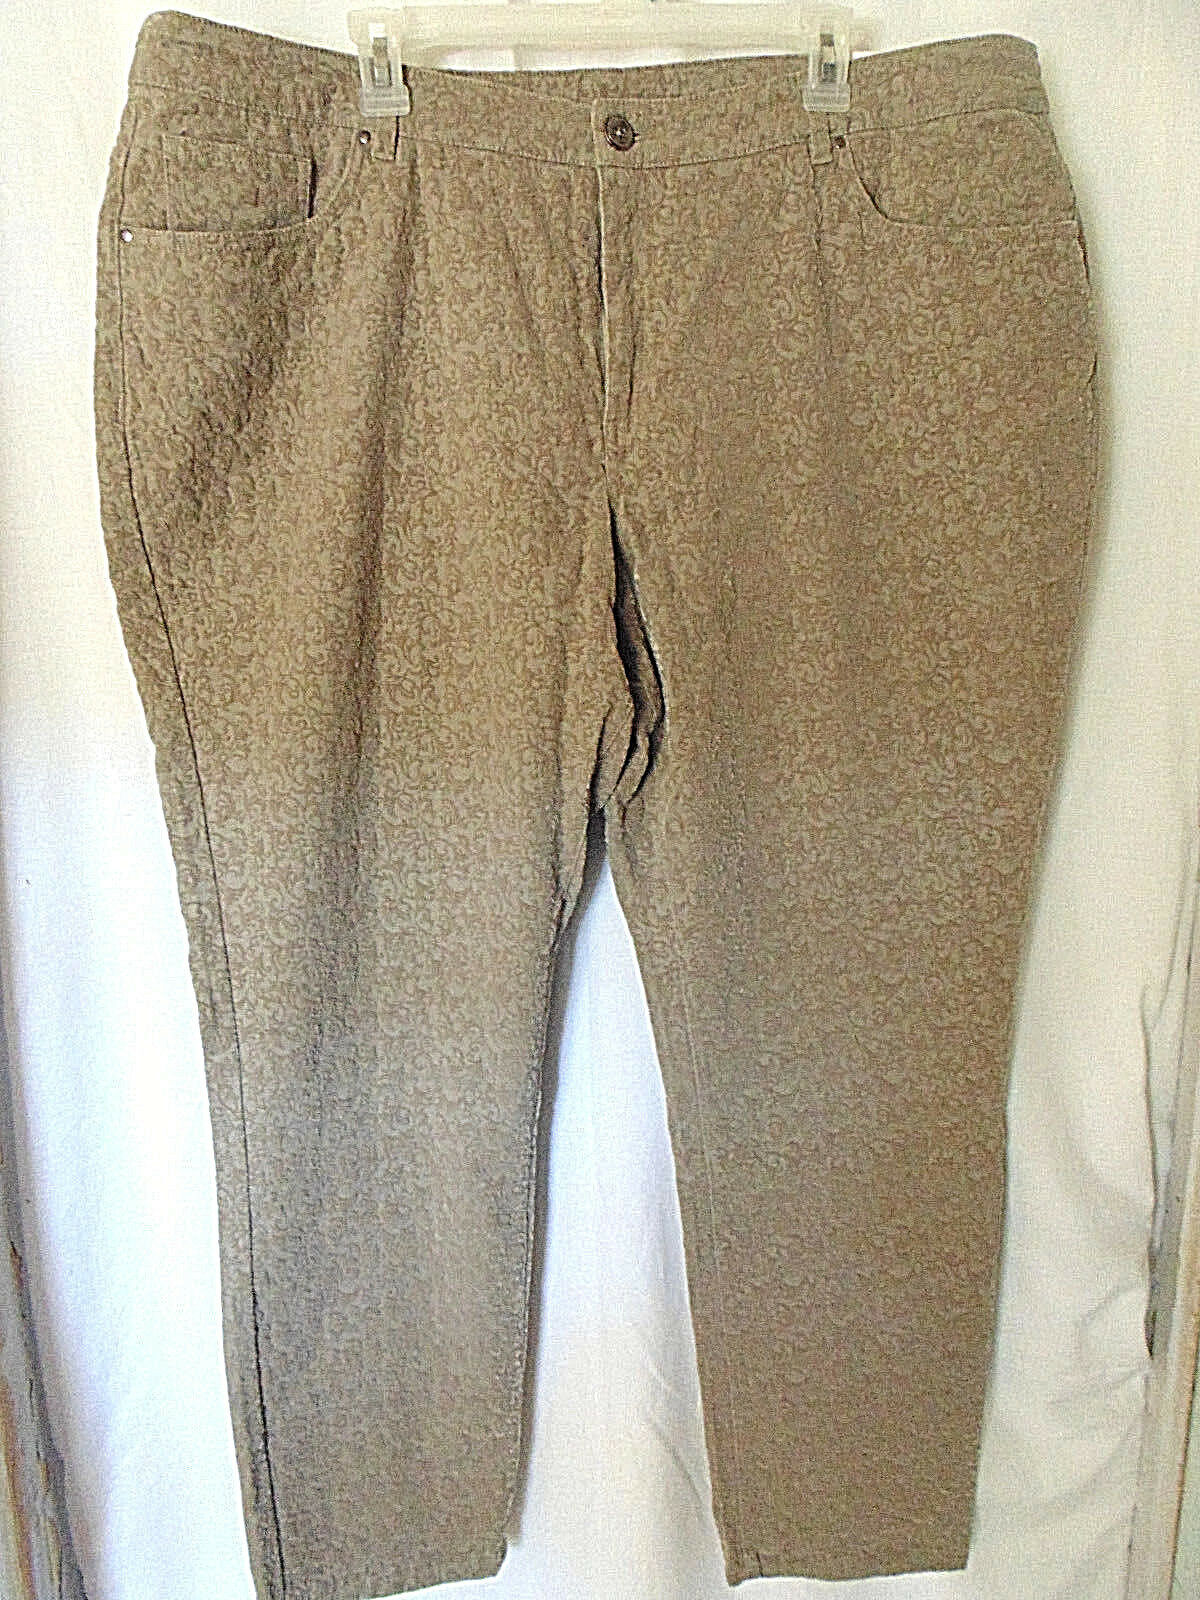 CJ Banks Womens Pants Size 22W Tan Raised Pattern Tapered Leg Causal Office